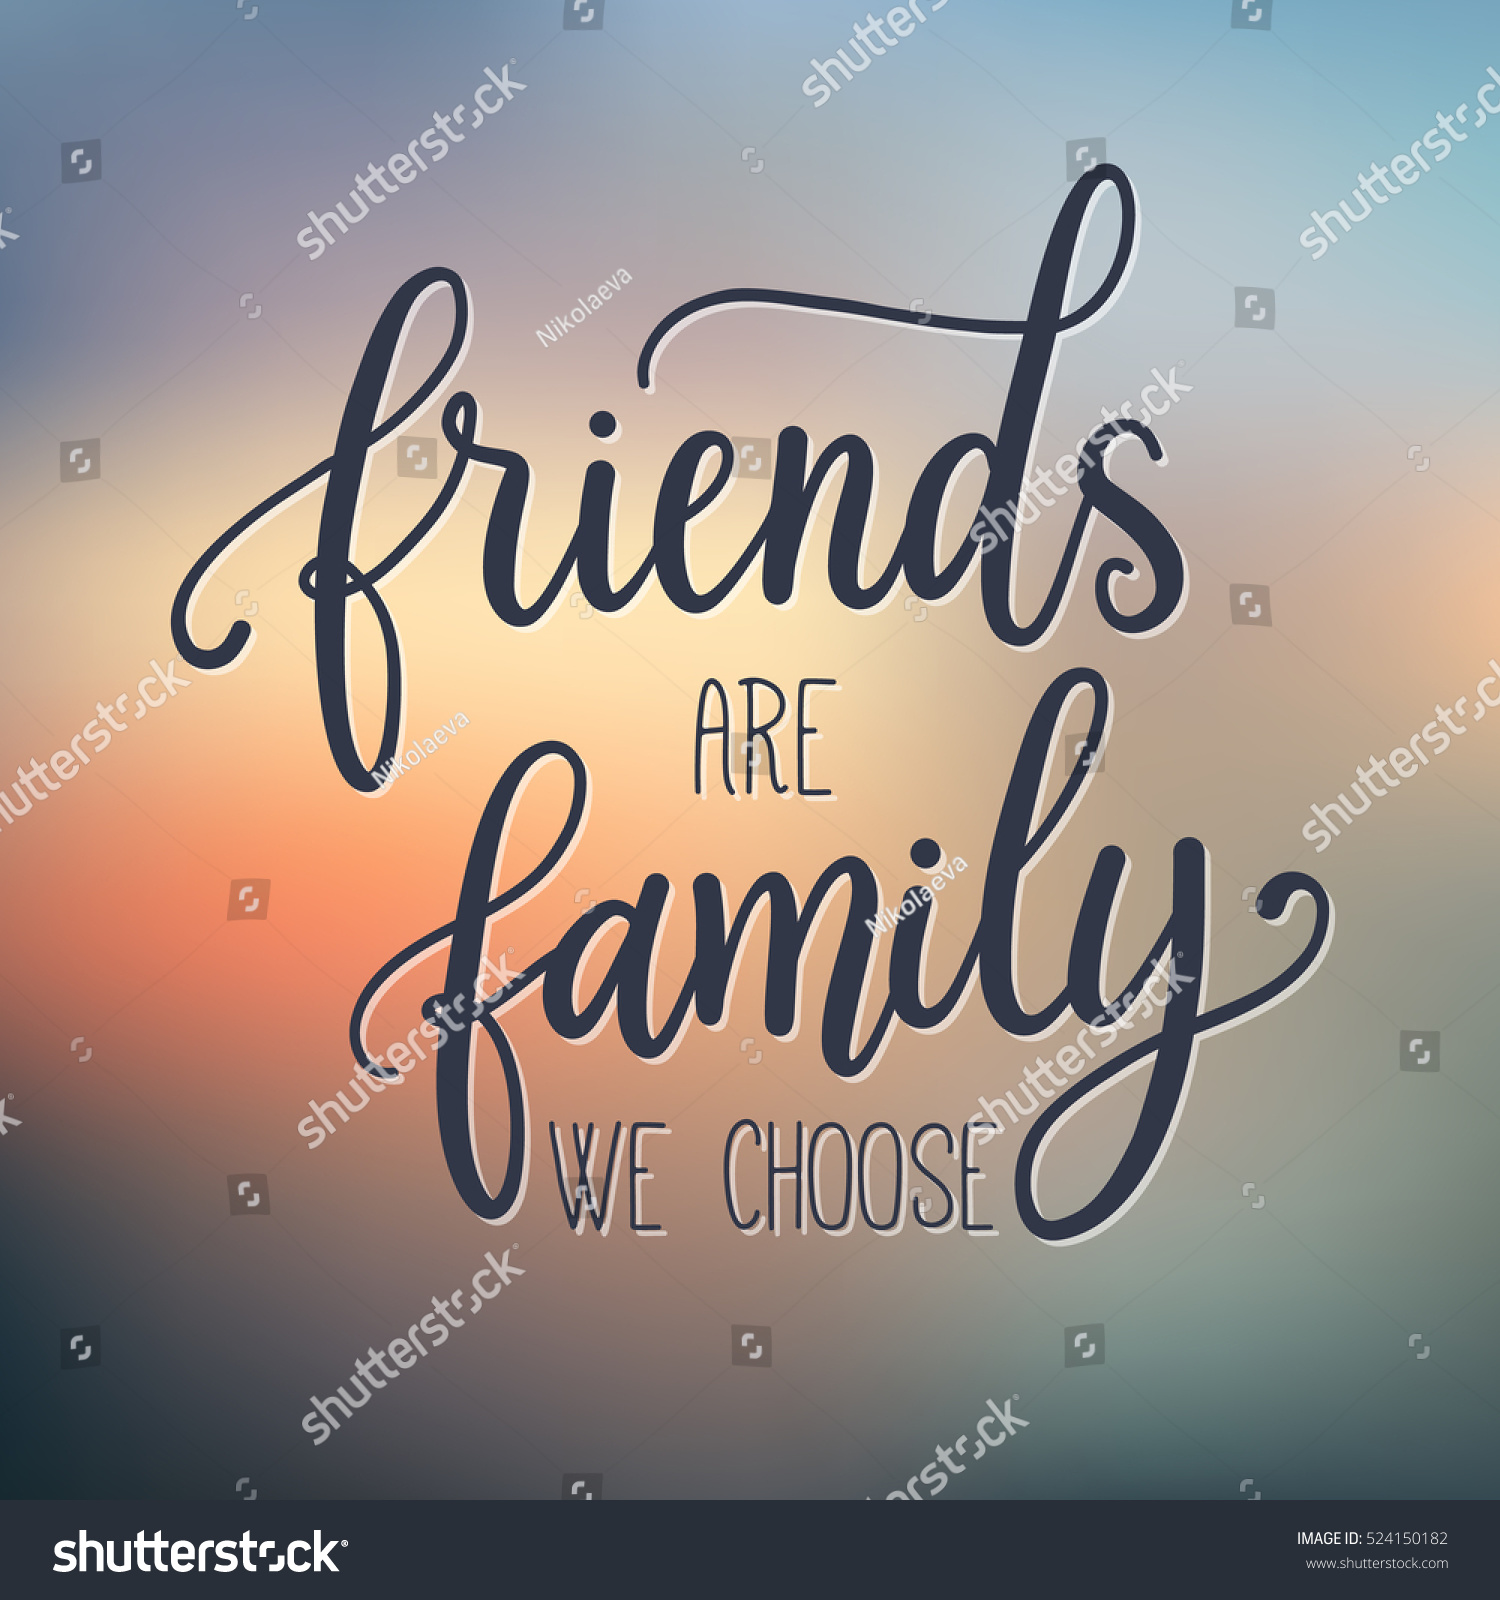 Family We Choose Quotes: Friends Are Family We Choose. Fashion Print Design, Modern